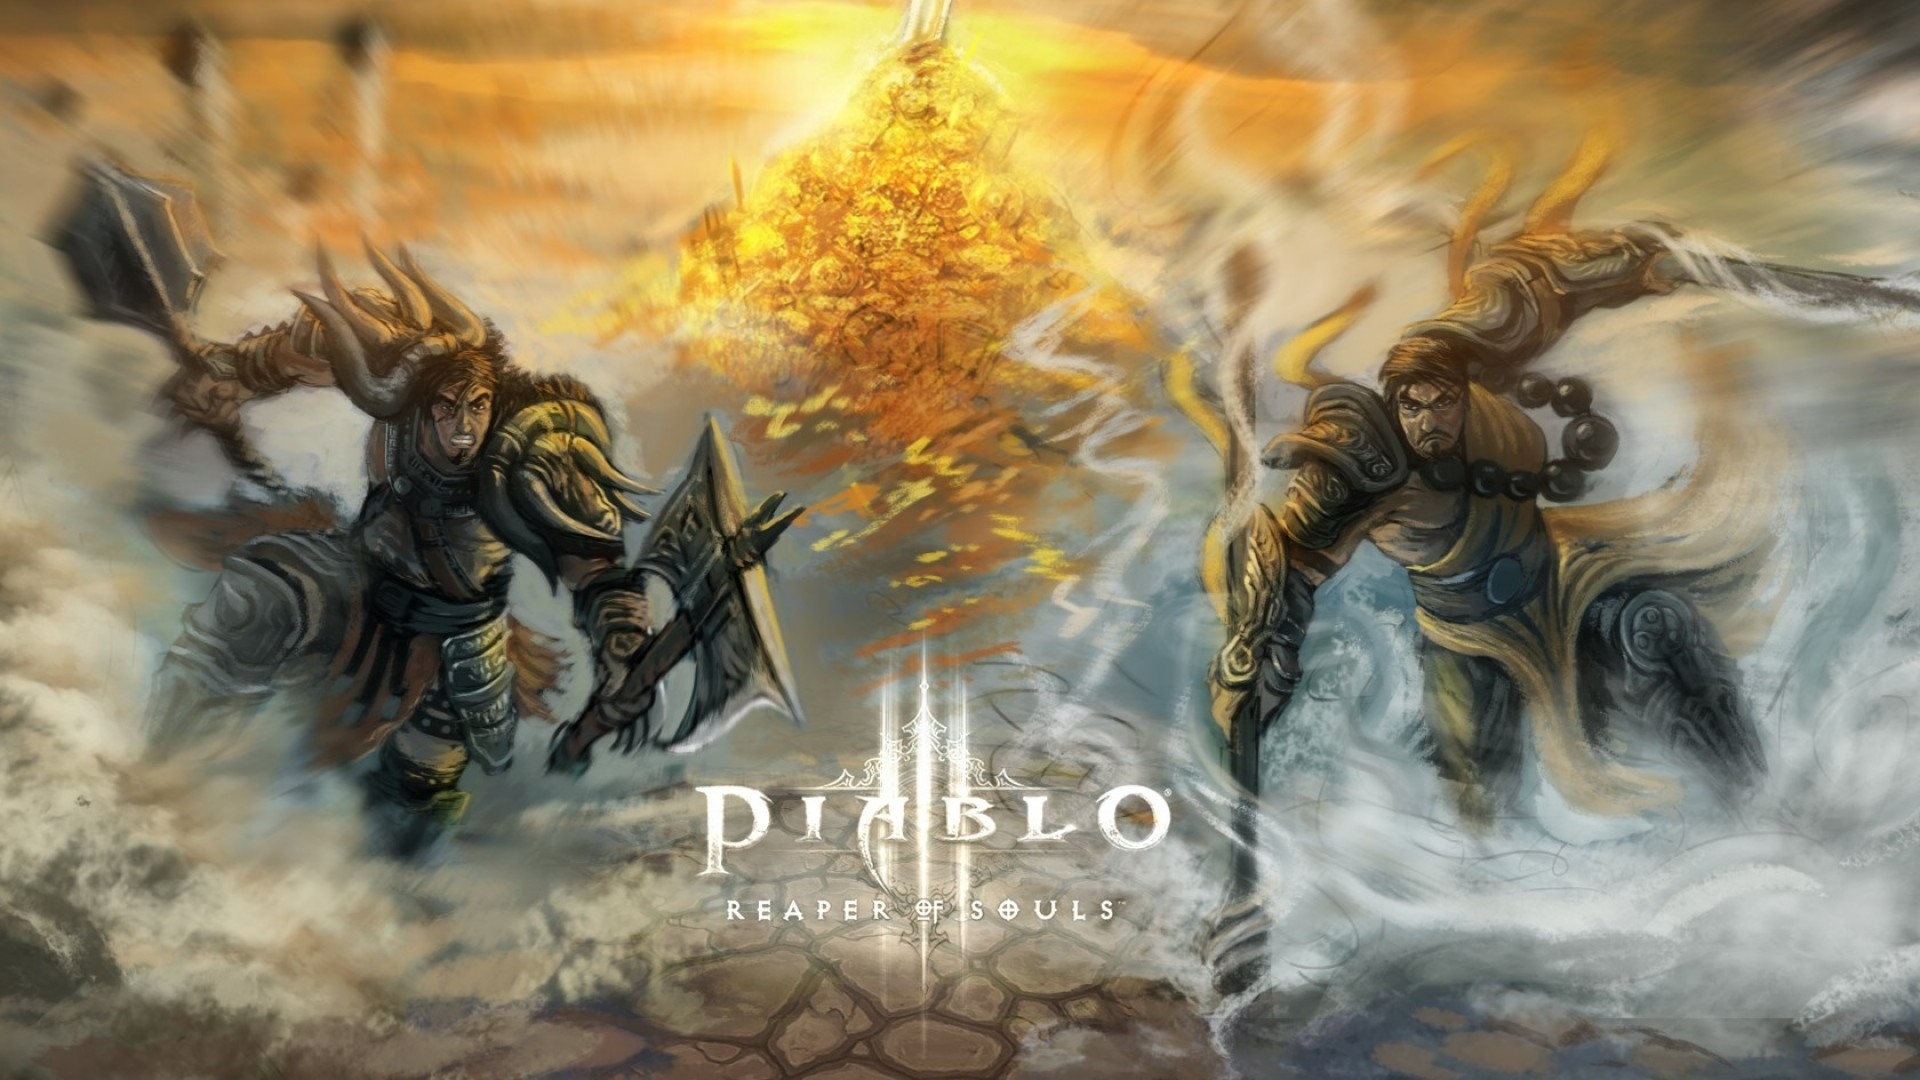 1920x1080 Diablo 3 RoS HD Wallpapers Free Download : Unique High Resolution Pics - HD  Wallpapers